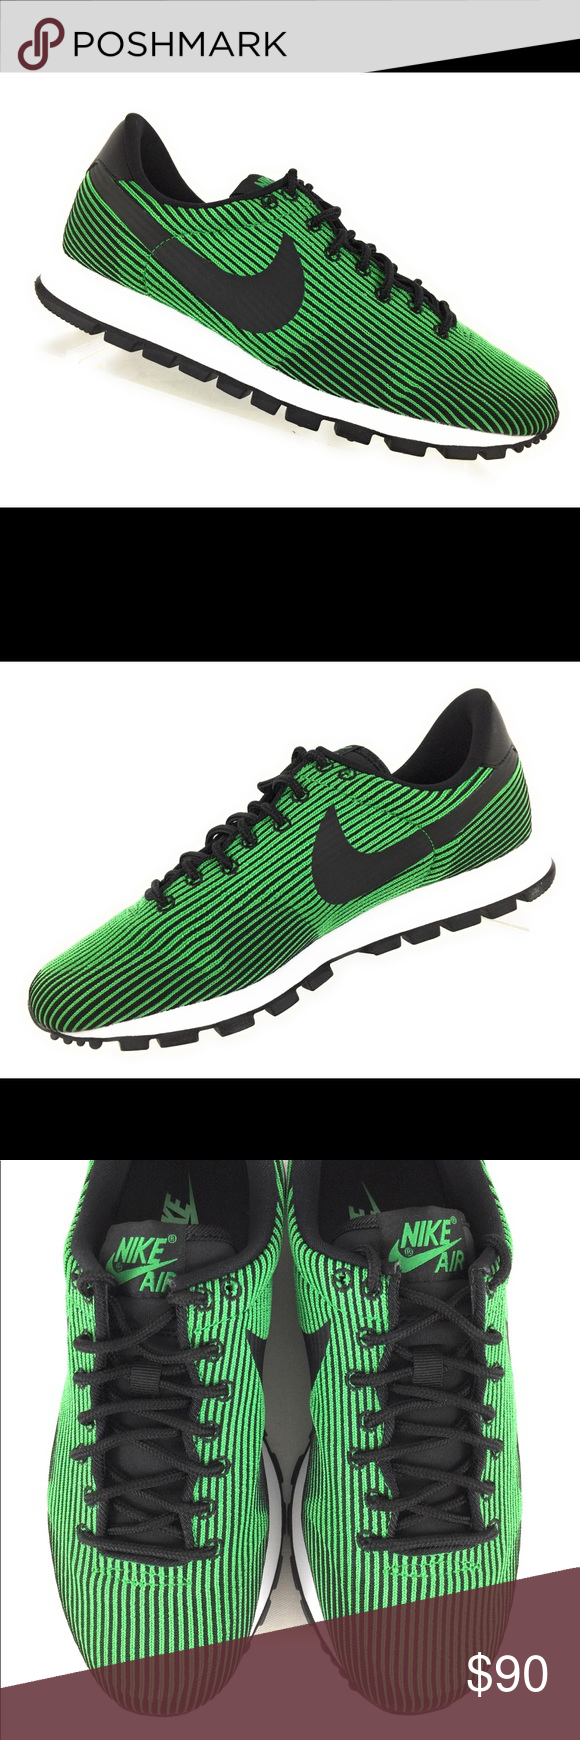 c84b8104e7bb Nike Air Pegasus  83 KJCRD Running Shoes NIB Nike Air Pegasus  83 KJCRD  Running and Casual Shoes. Size 6.5. See all photos for more detail. Green  Leaf with ...